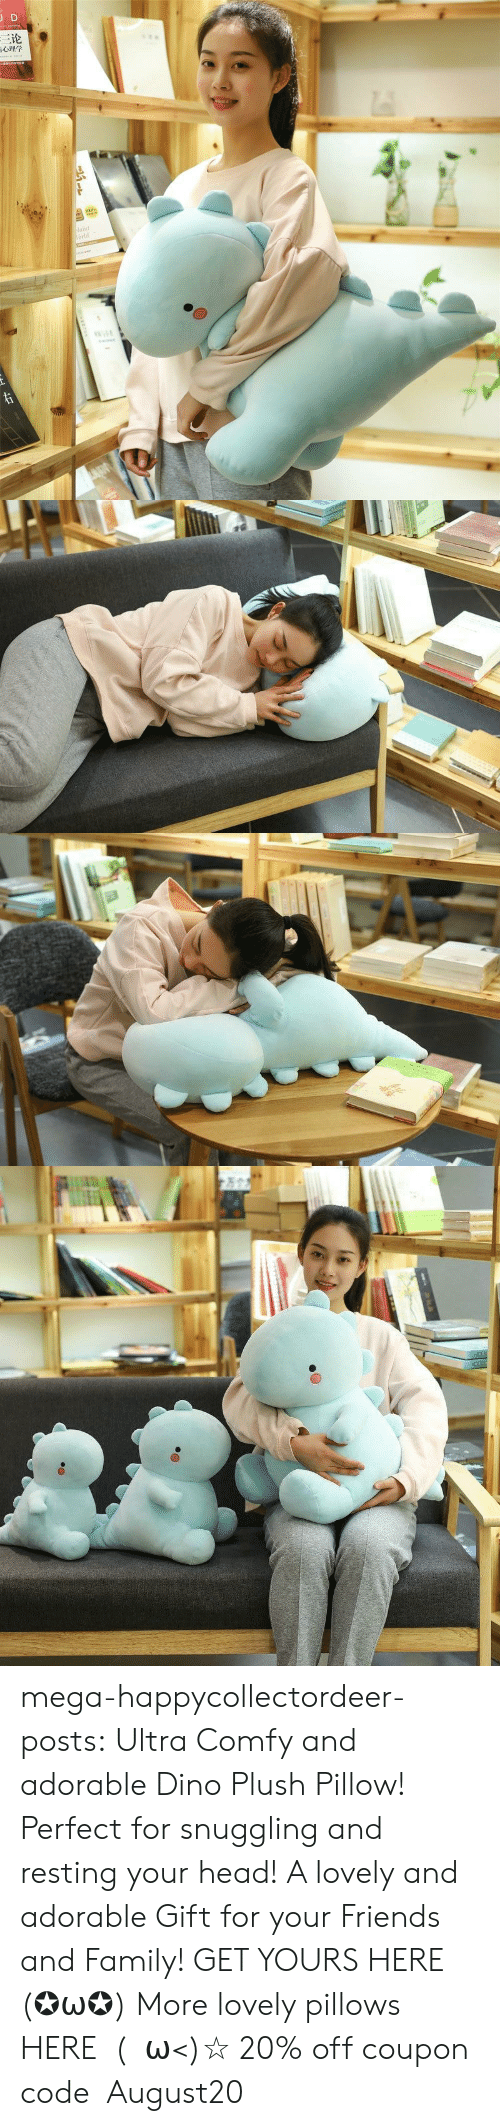 pillows: JD  三论  laint  orld  TDNAR  ww.e mega-happycollectordeer-posts:  Ultra Comfy and adorable Dino Plush Pillow! Perfect for snuggling and resting your head! A lovely and adorable Gift for your Friends and Family! GET YOURS HERE (✪ω✪) More lovely pillows HERE  (・ω<)☆ 20% off coupon code:August20